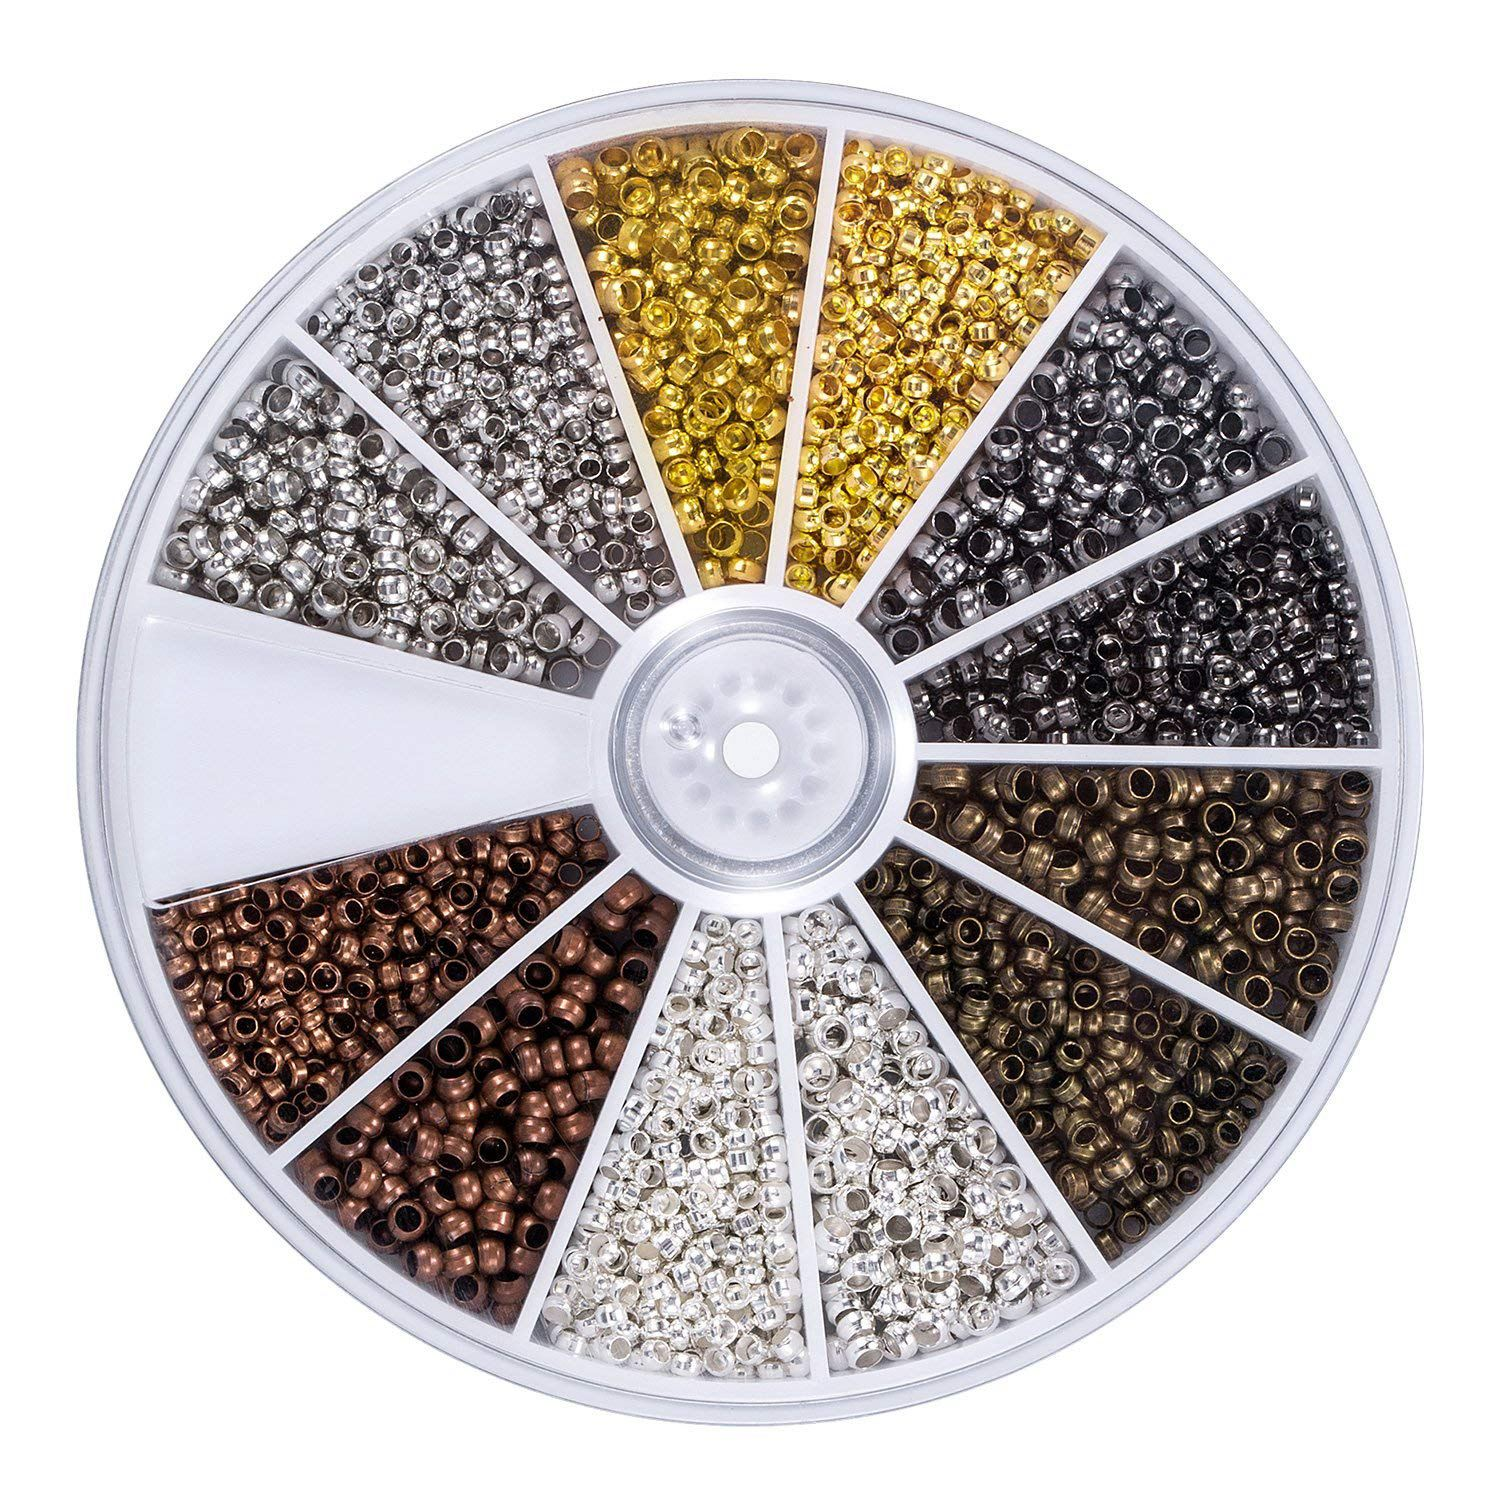 2250 Pieces Tube Crimp Beads 2 Mm 2.5 Mm Mixed Bracelet Loose Beads Spacer Jewelry Making Ends Caps, 6 Colors Online Shop